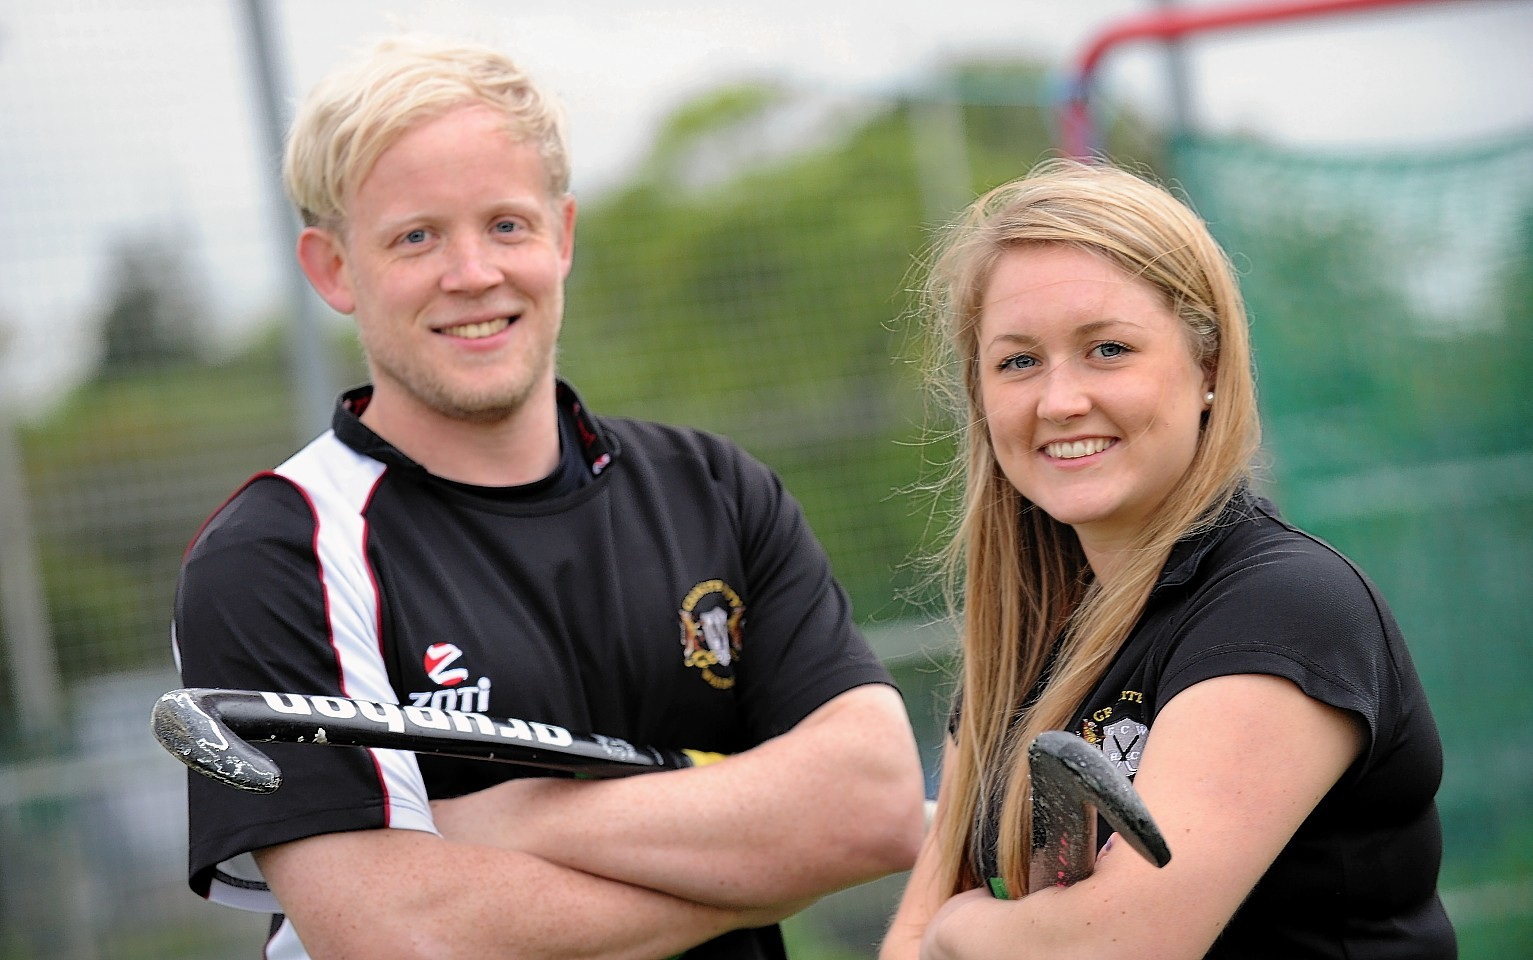 Granite City Wanderers captains Leon Wilkie and Jane Cargill are ready for cup final action